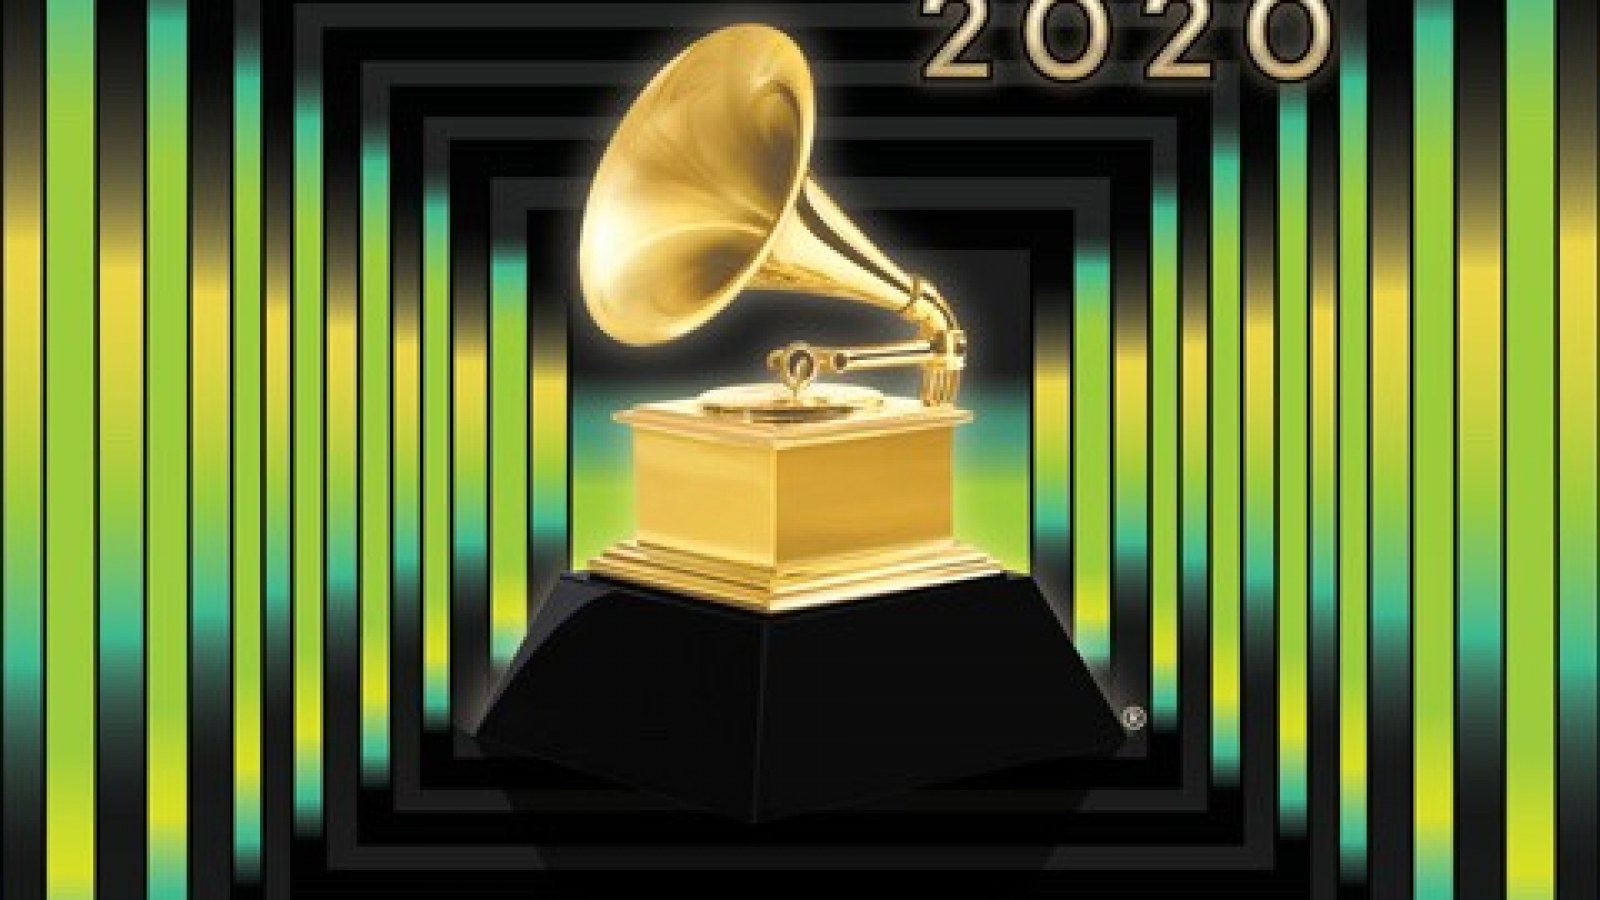 Grammy Nominations 2020 How to Watch Live Stream the Announcement 1600x900